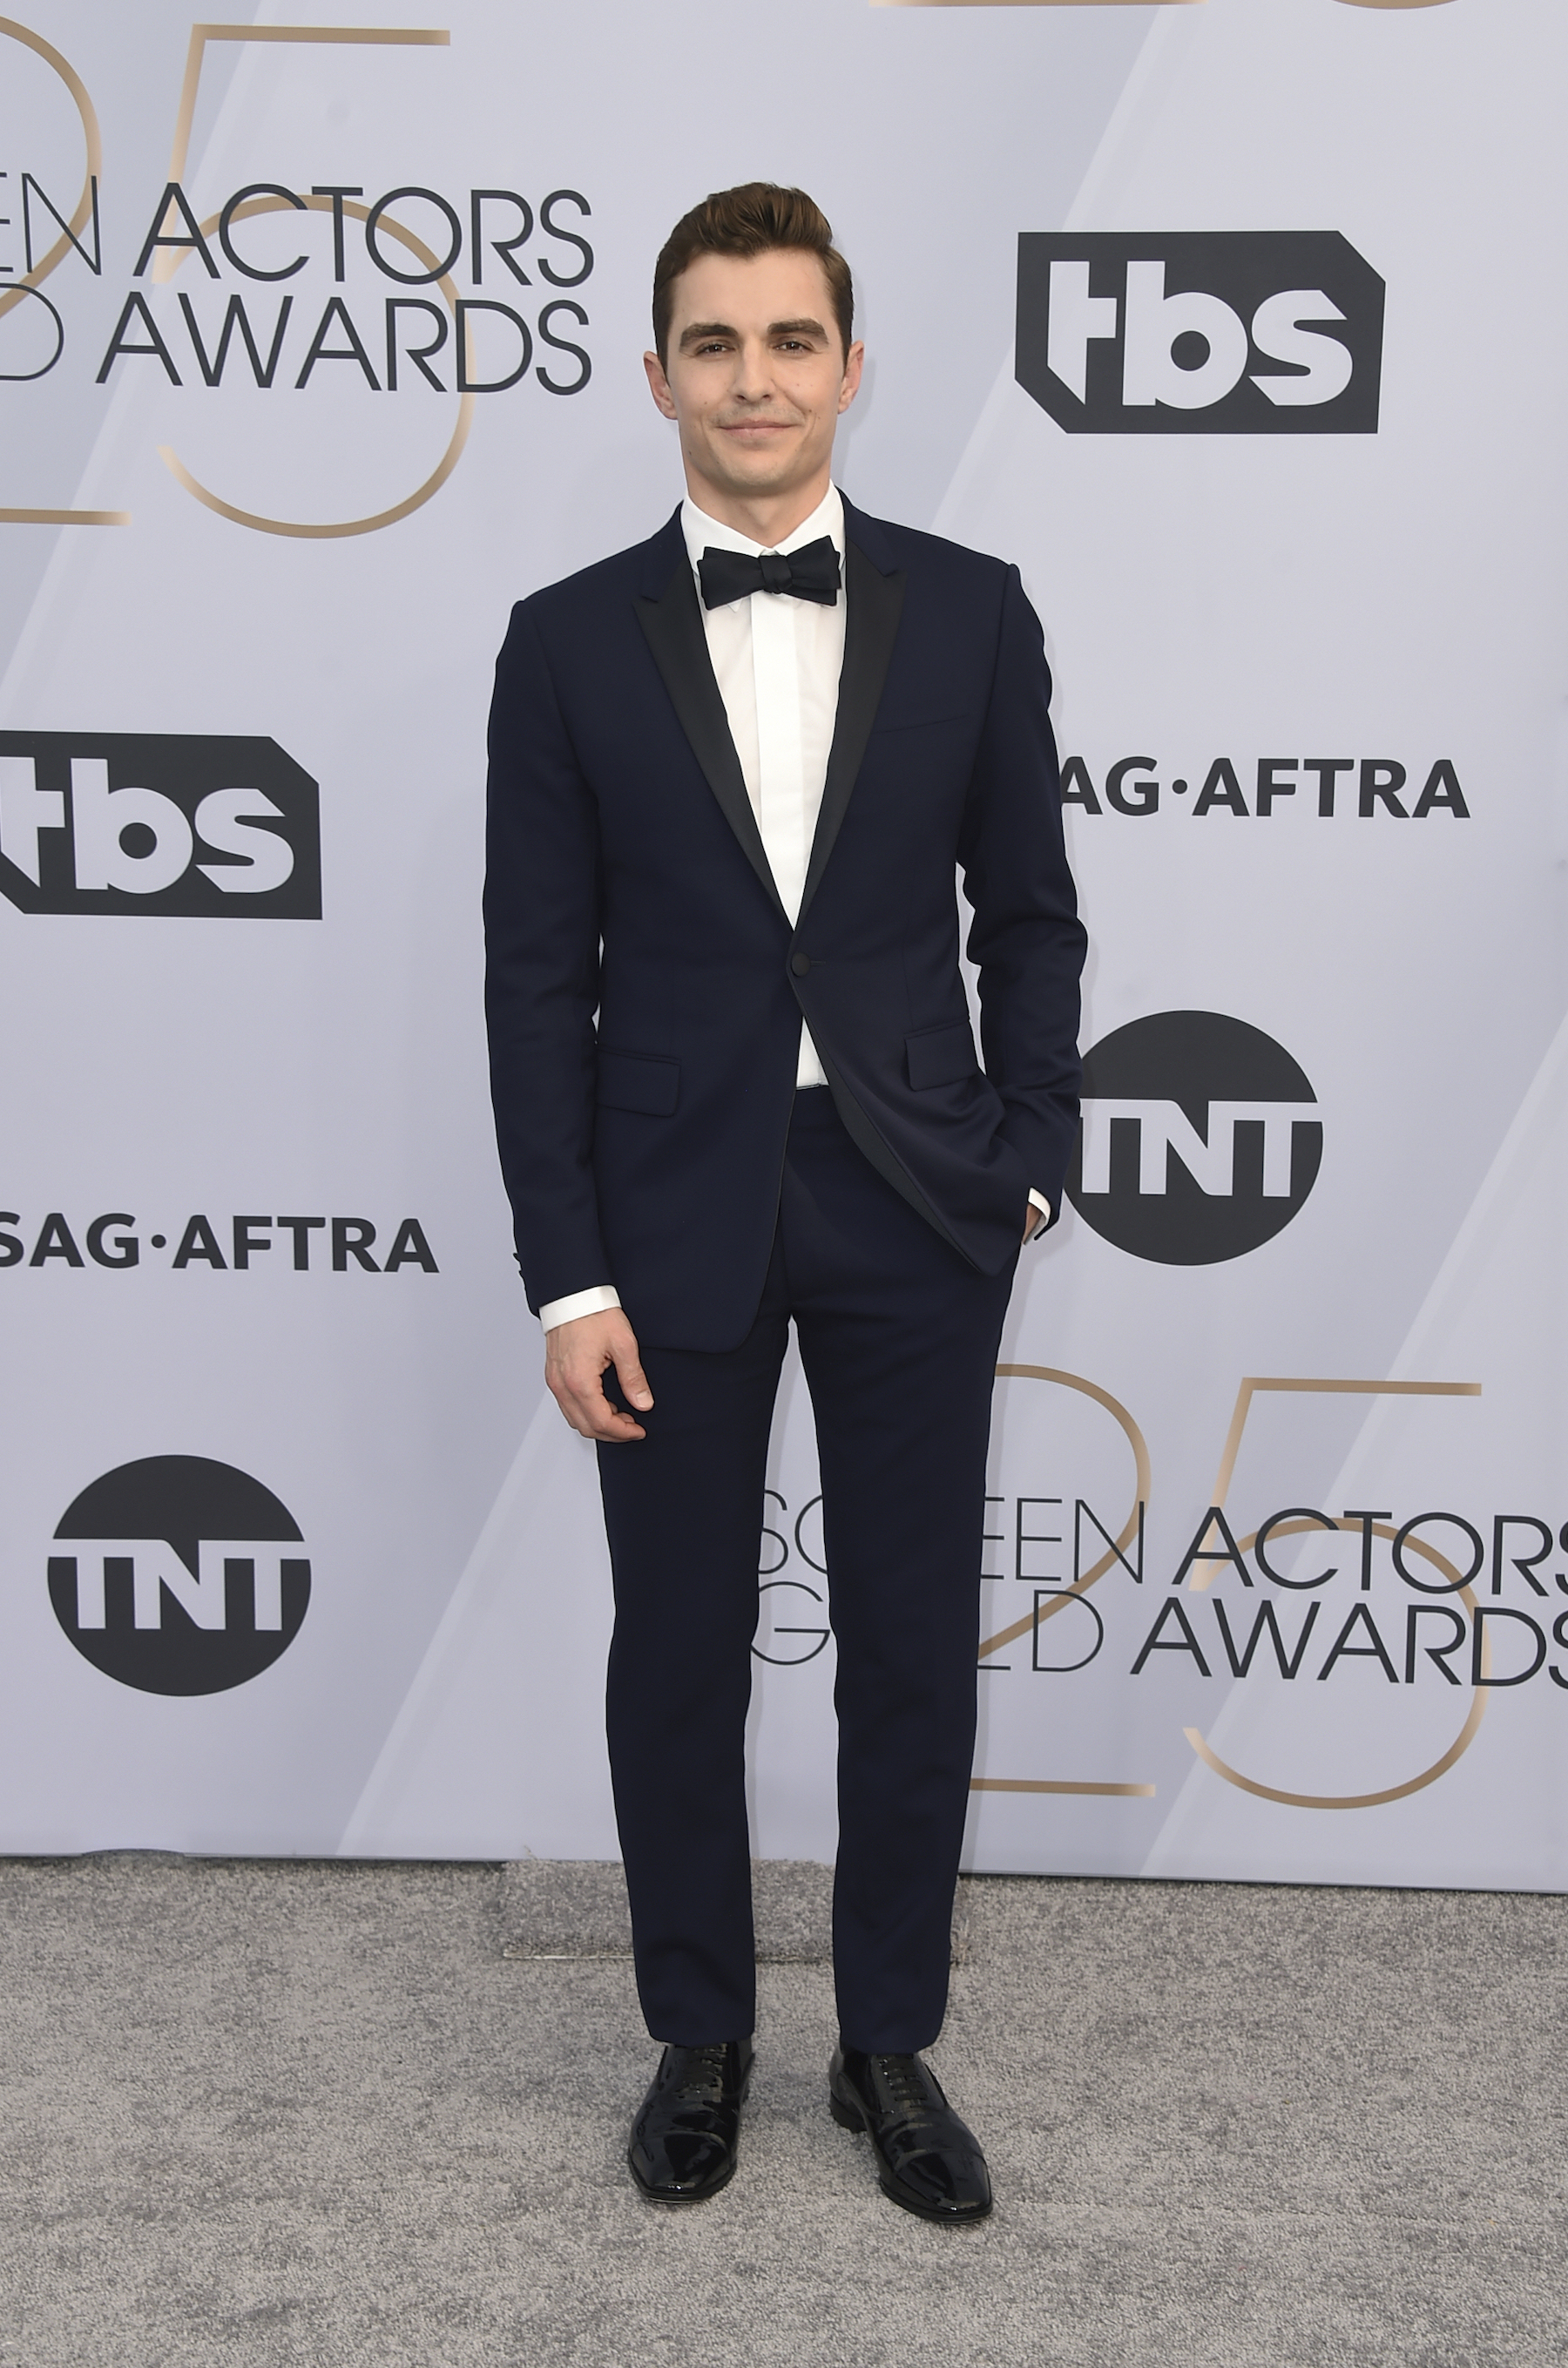 <div class='meta'><div class='origin-logo' data-origin='AP'></div><span class='caption-text' data-credit='Jordan Strauss/Invision/AP'>Dave Franco arrives at the 25th annual Screen Actors Guild Awards at the Shrine Auditorium & Expo Hall on Sunday, Jan. 27, 2019, in Los Angeles.</span></div>